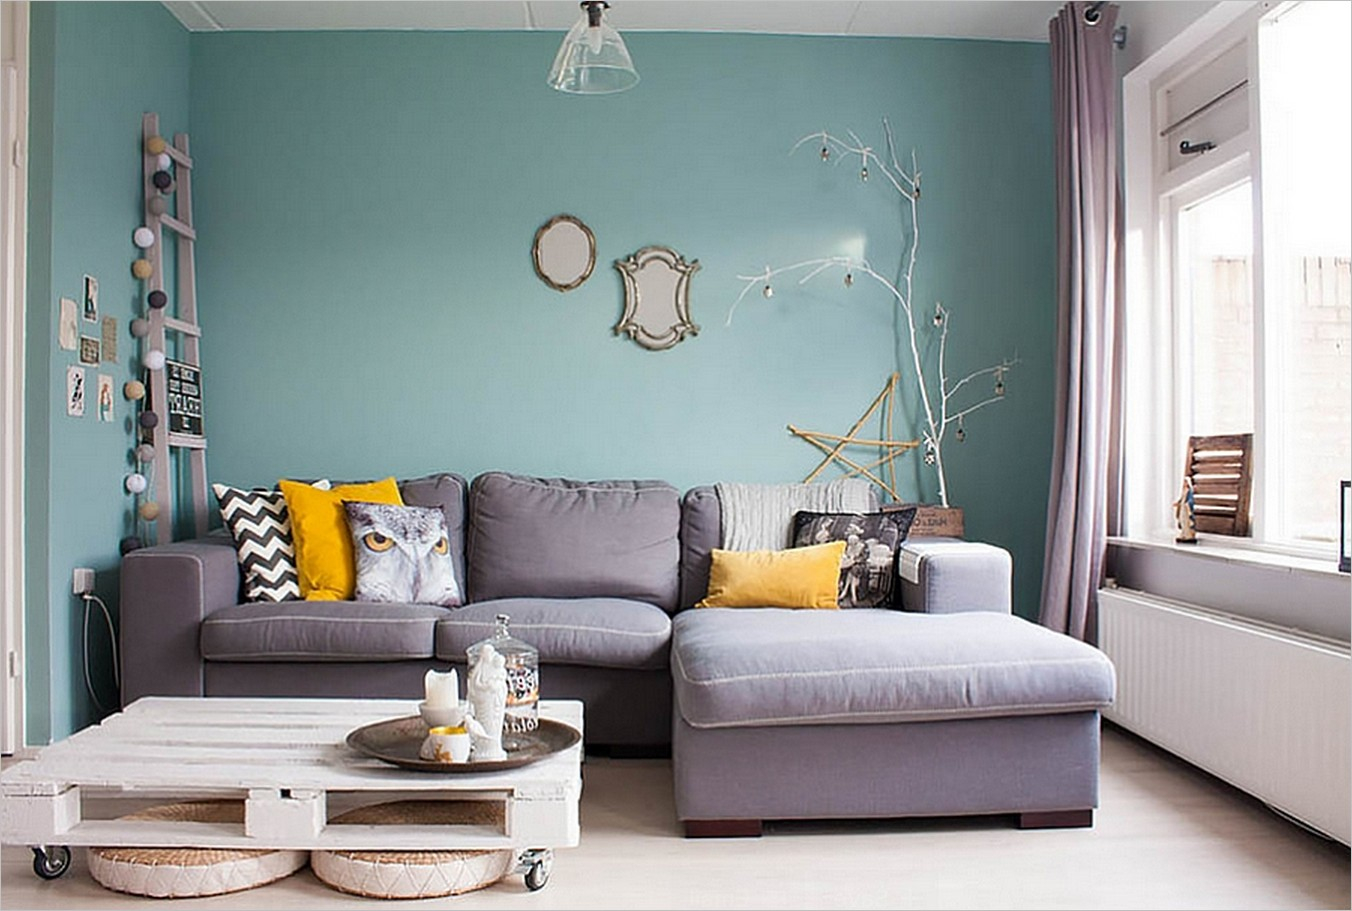 Light Colours For Living Room 2017 Color Trends For Your Home Interior According To